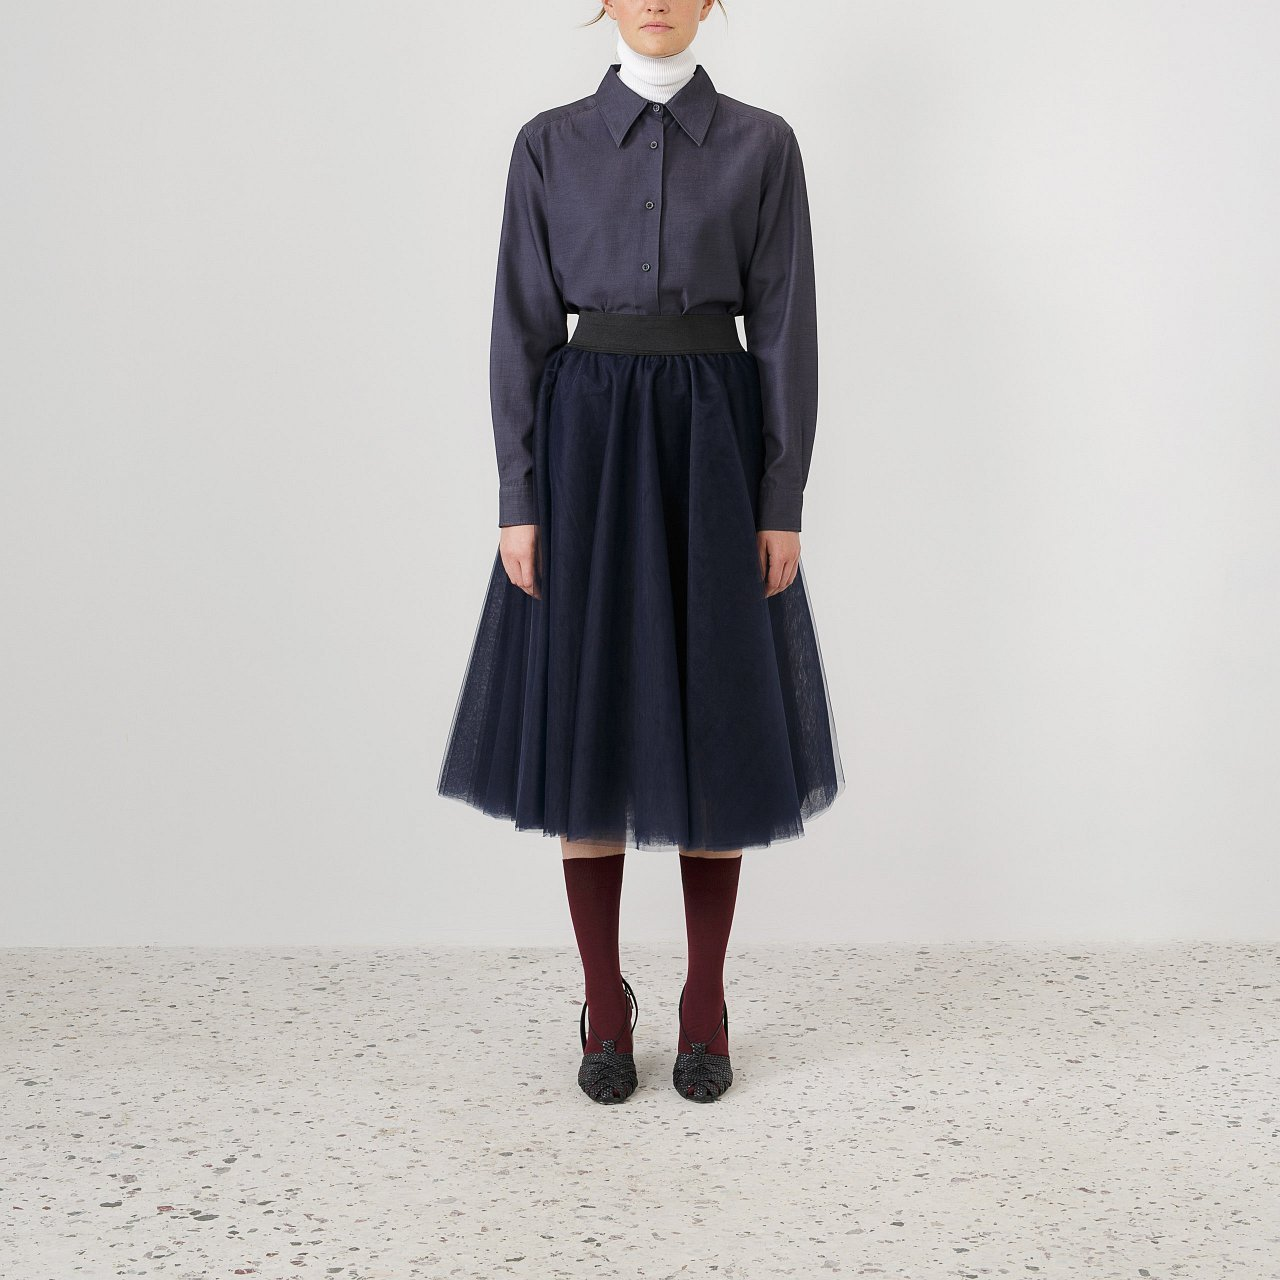 Product preview: Tulle Tutu Skirt Navy Blue Midi